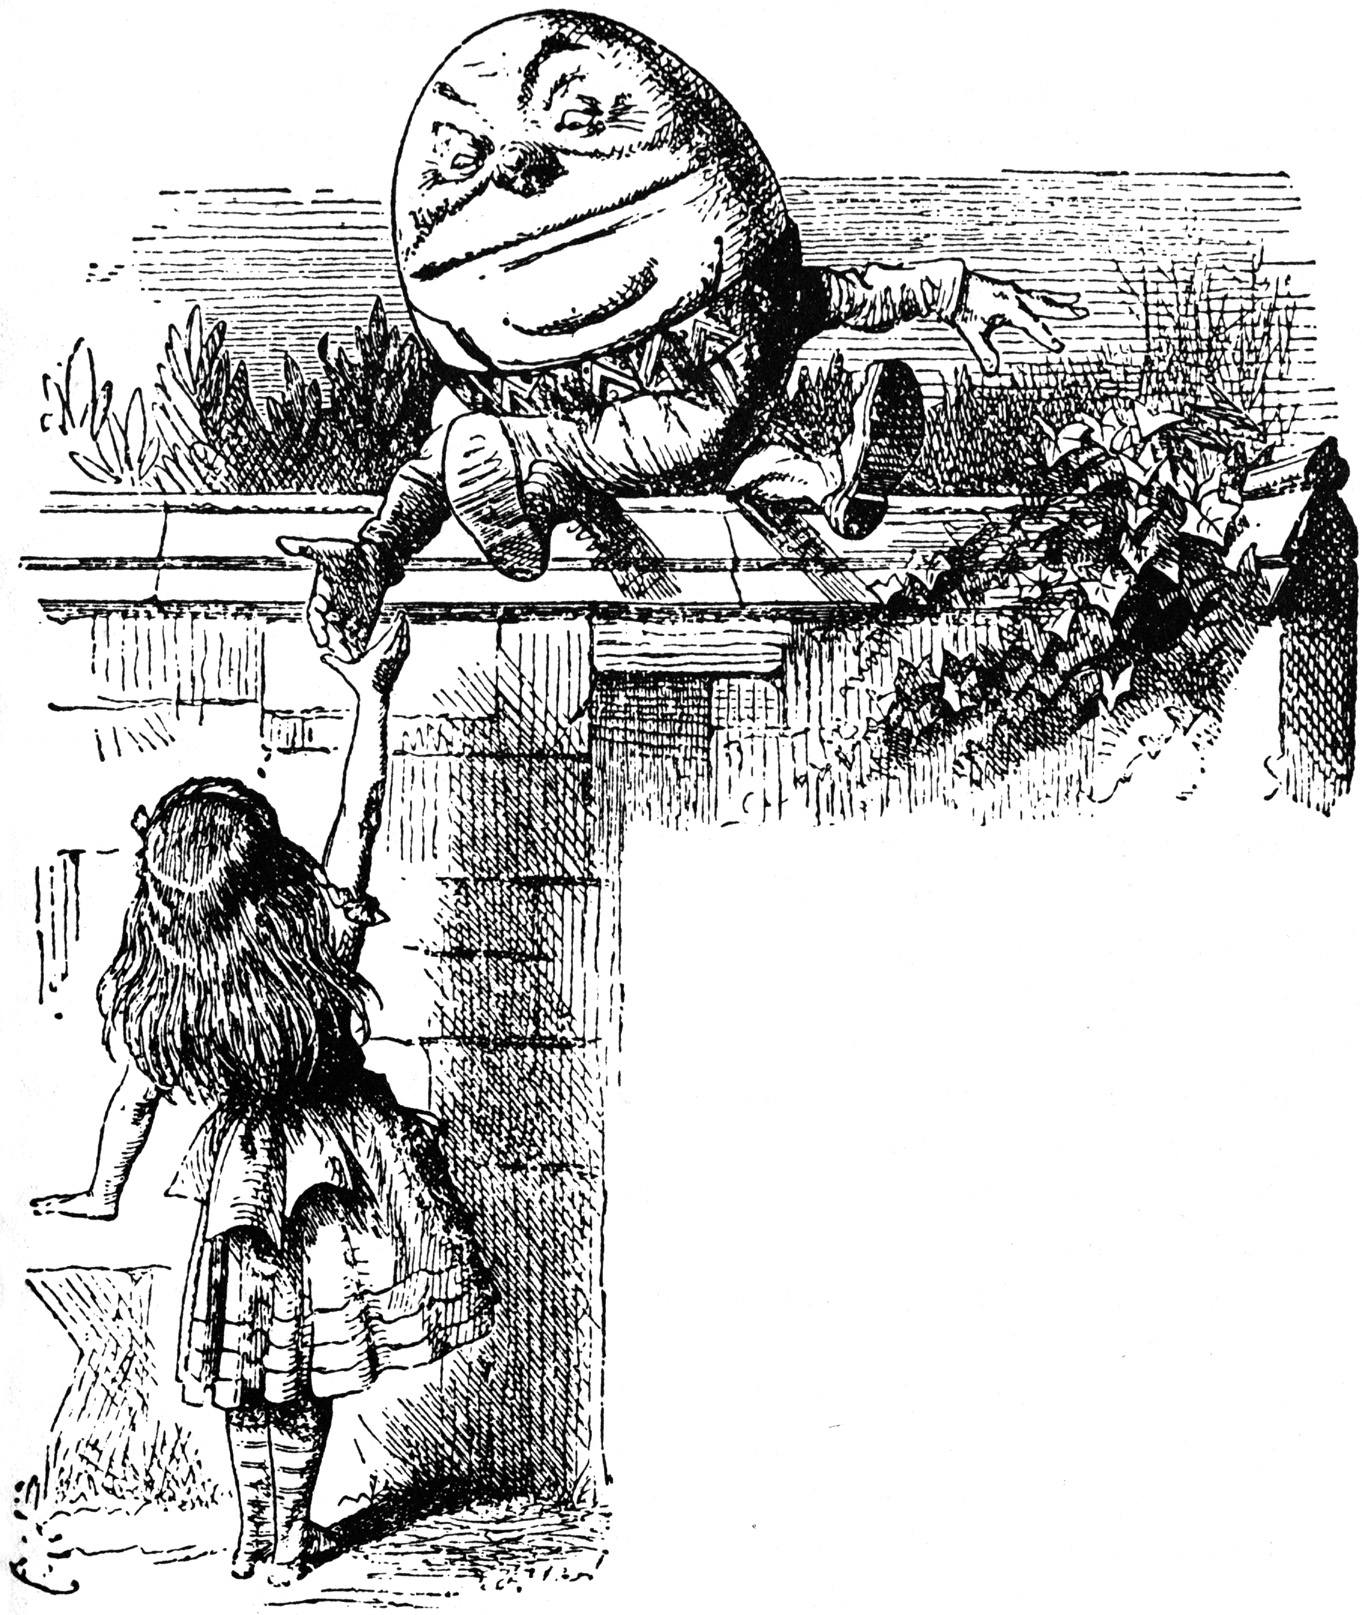 Alice meeting Humpty Dumtpy